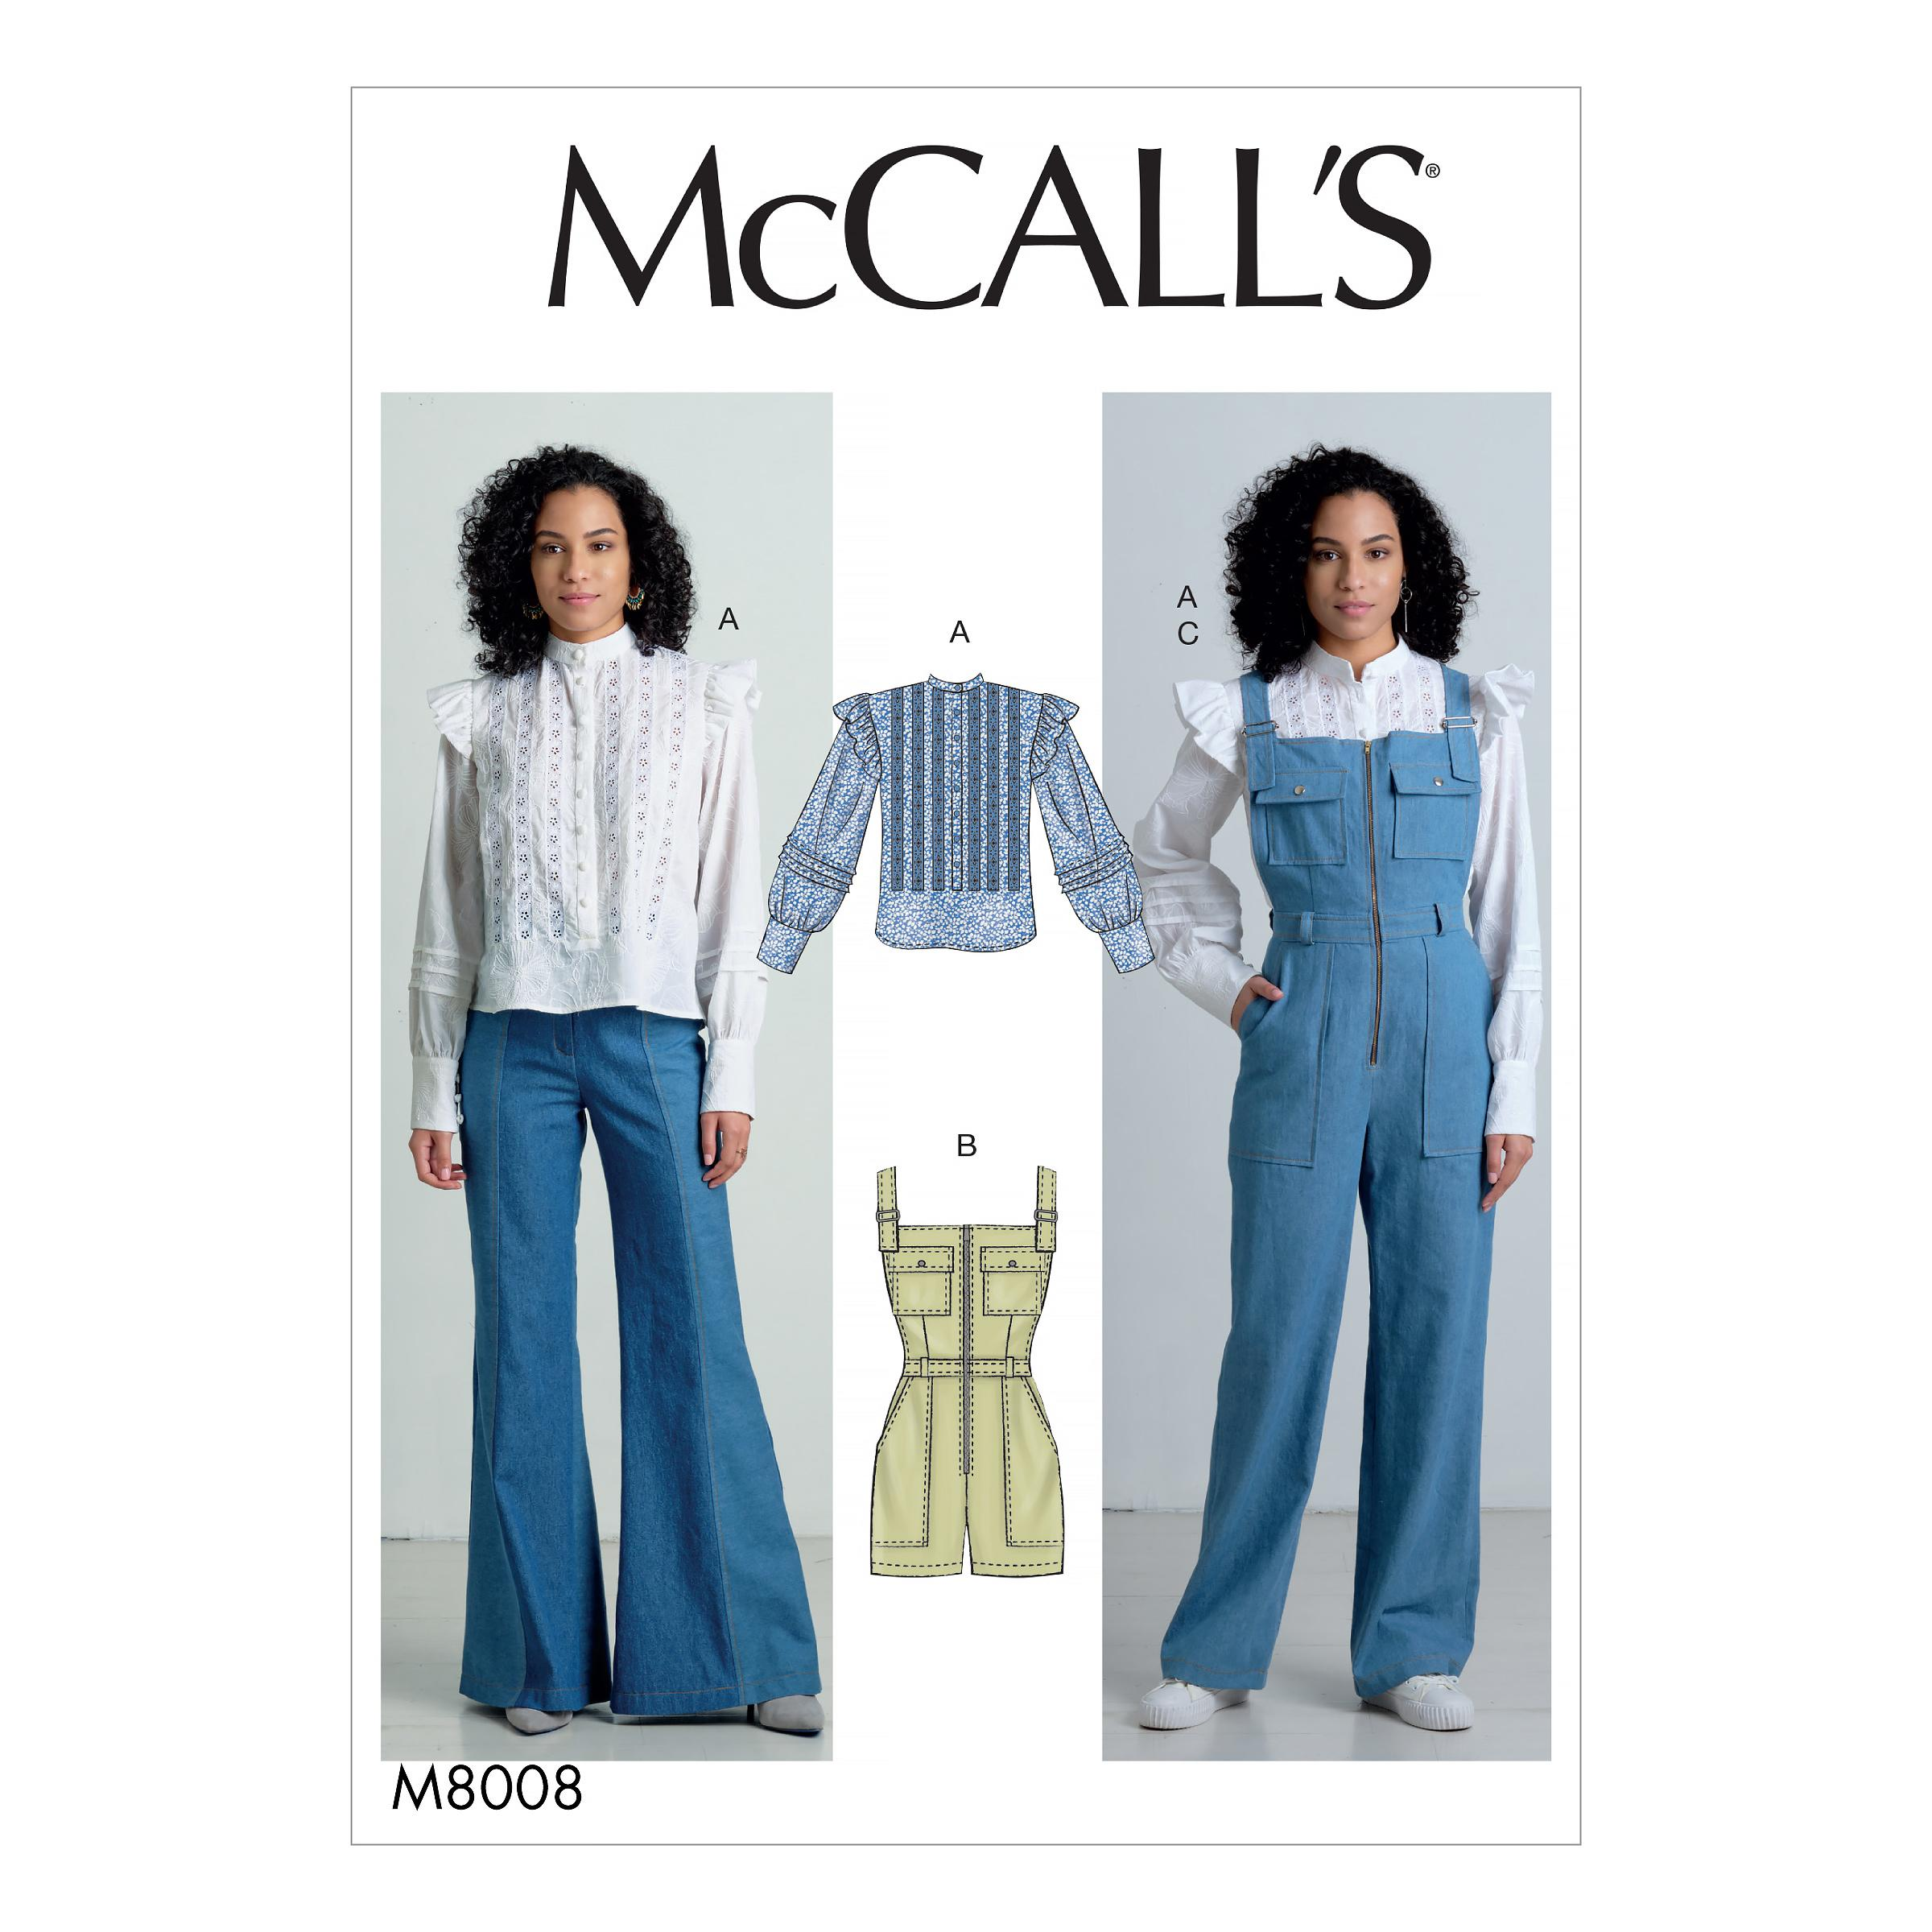 McCalls M8008 Misses Pants, Jumpsuits & Shorts, Misses Tops, Misses Coordinates